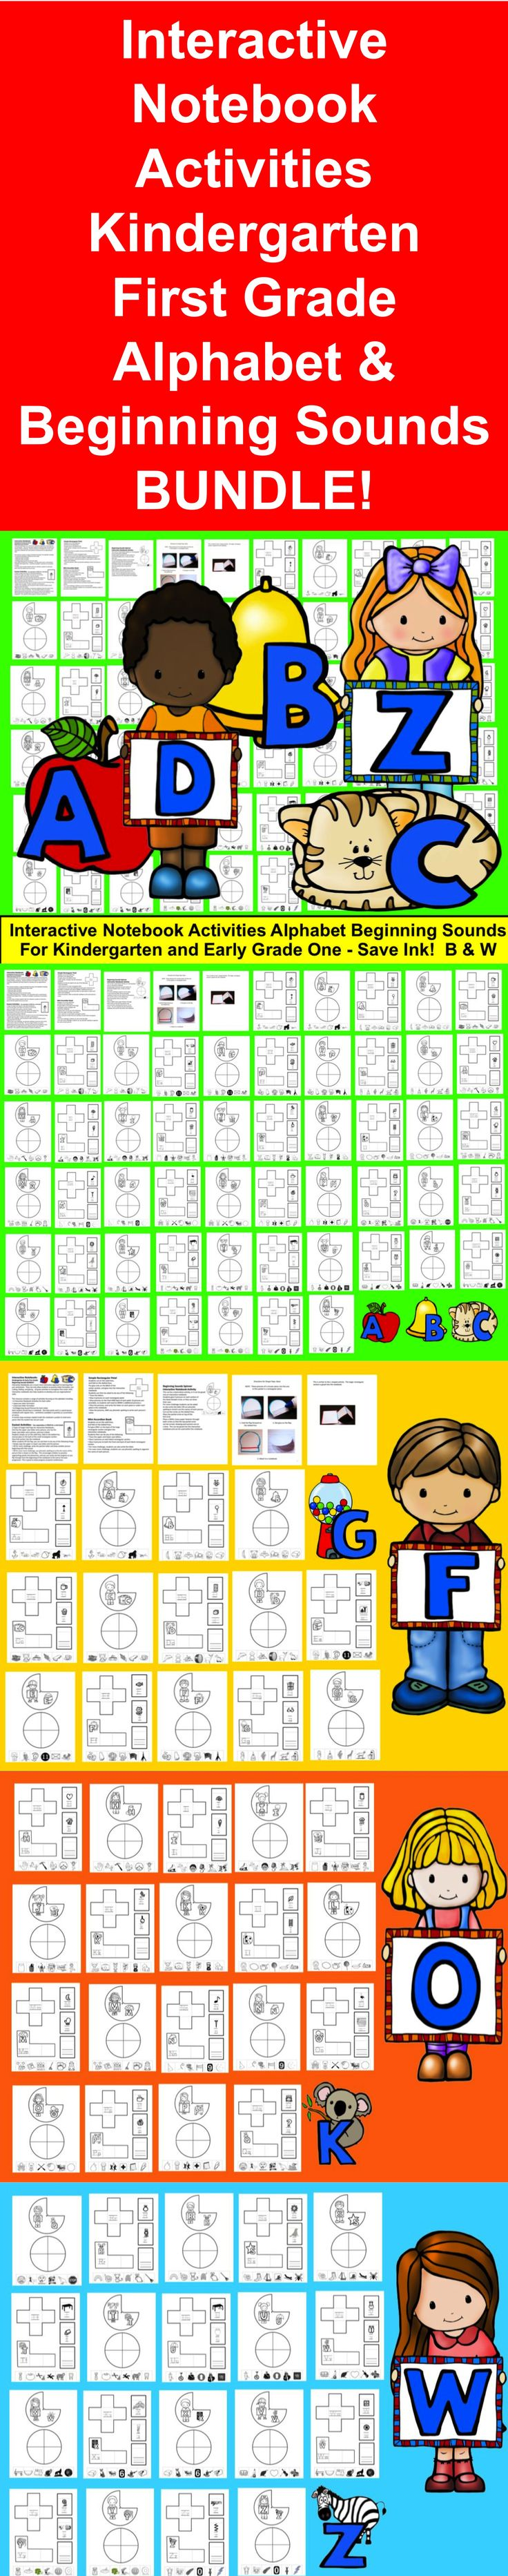 $ Interactive Notebooks  ♥ Kindergarten & Early First Grade ♥ Beginning Sounds BUNDLE! ★ Interactive Notebooks are a much more interactive approach to learning than just worksheets.  ★ 58 Page Download  This resource contains a range of activities focusing on the alphabet including: ★ 6 Interactive Notebook Activities for Each Letter ★ Uppercase letter formation ★ Lowercase letter formation ★ 6-8 Beginning Sound Pictures for Each Letter